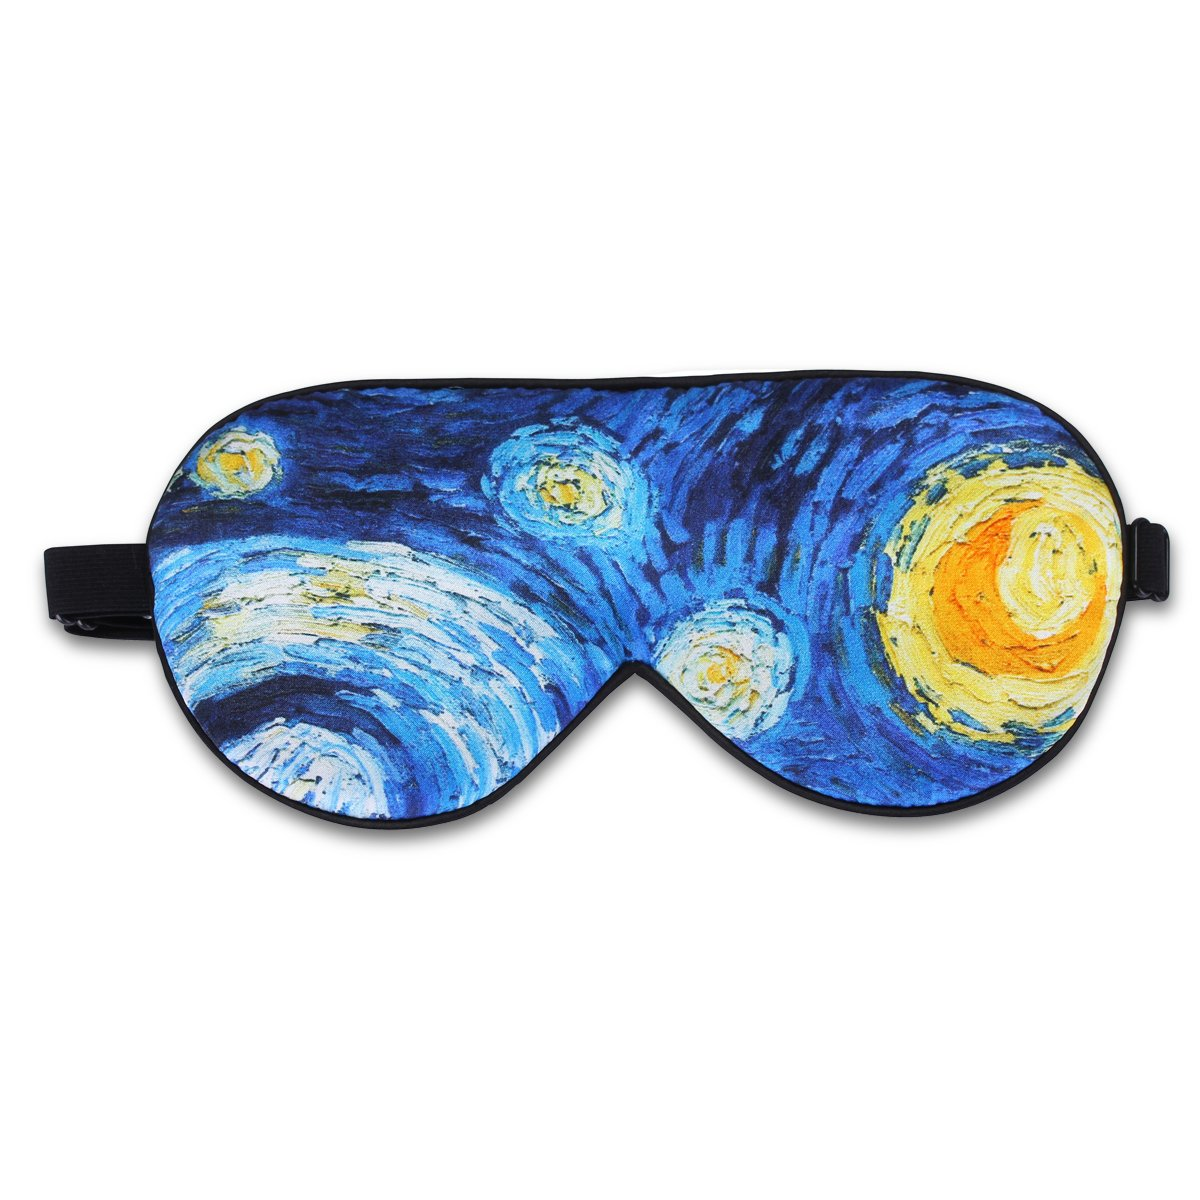 ALASKA BEAR® Natural silk sleep mask & blindfold, super-smooth eye mask (Starry Night)